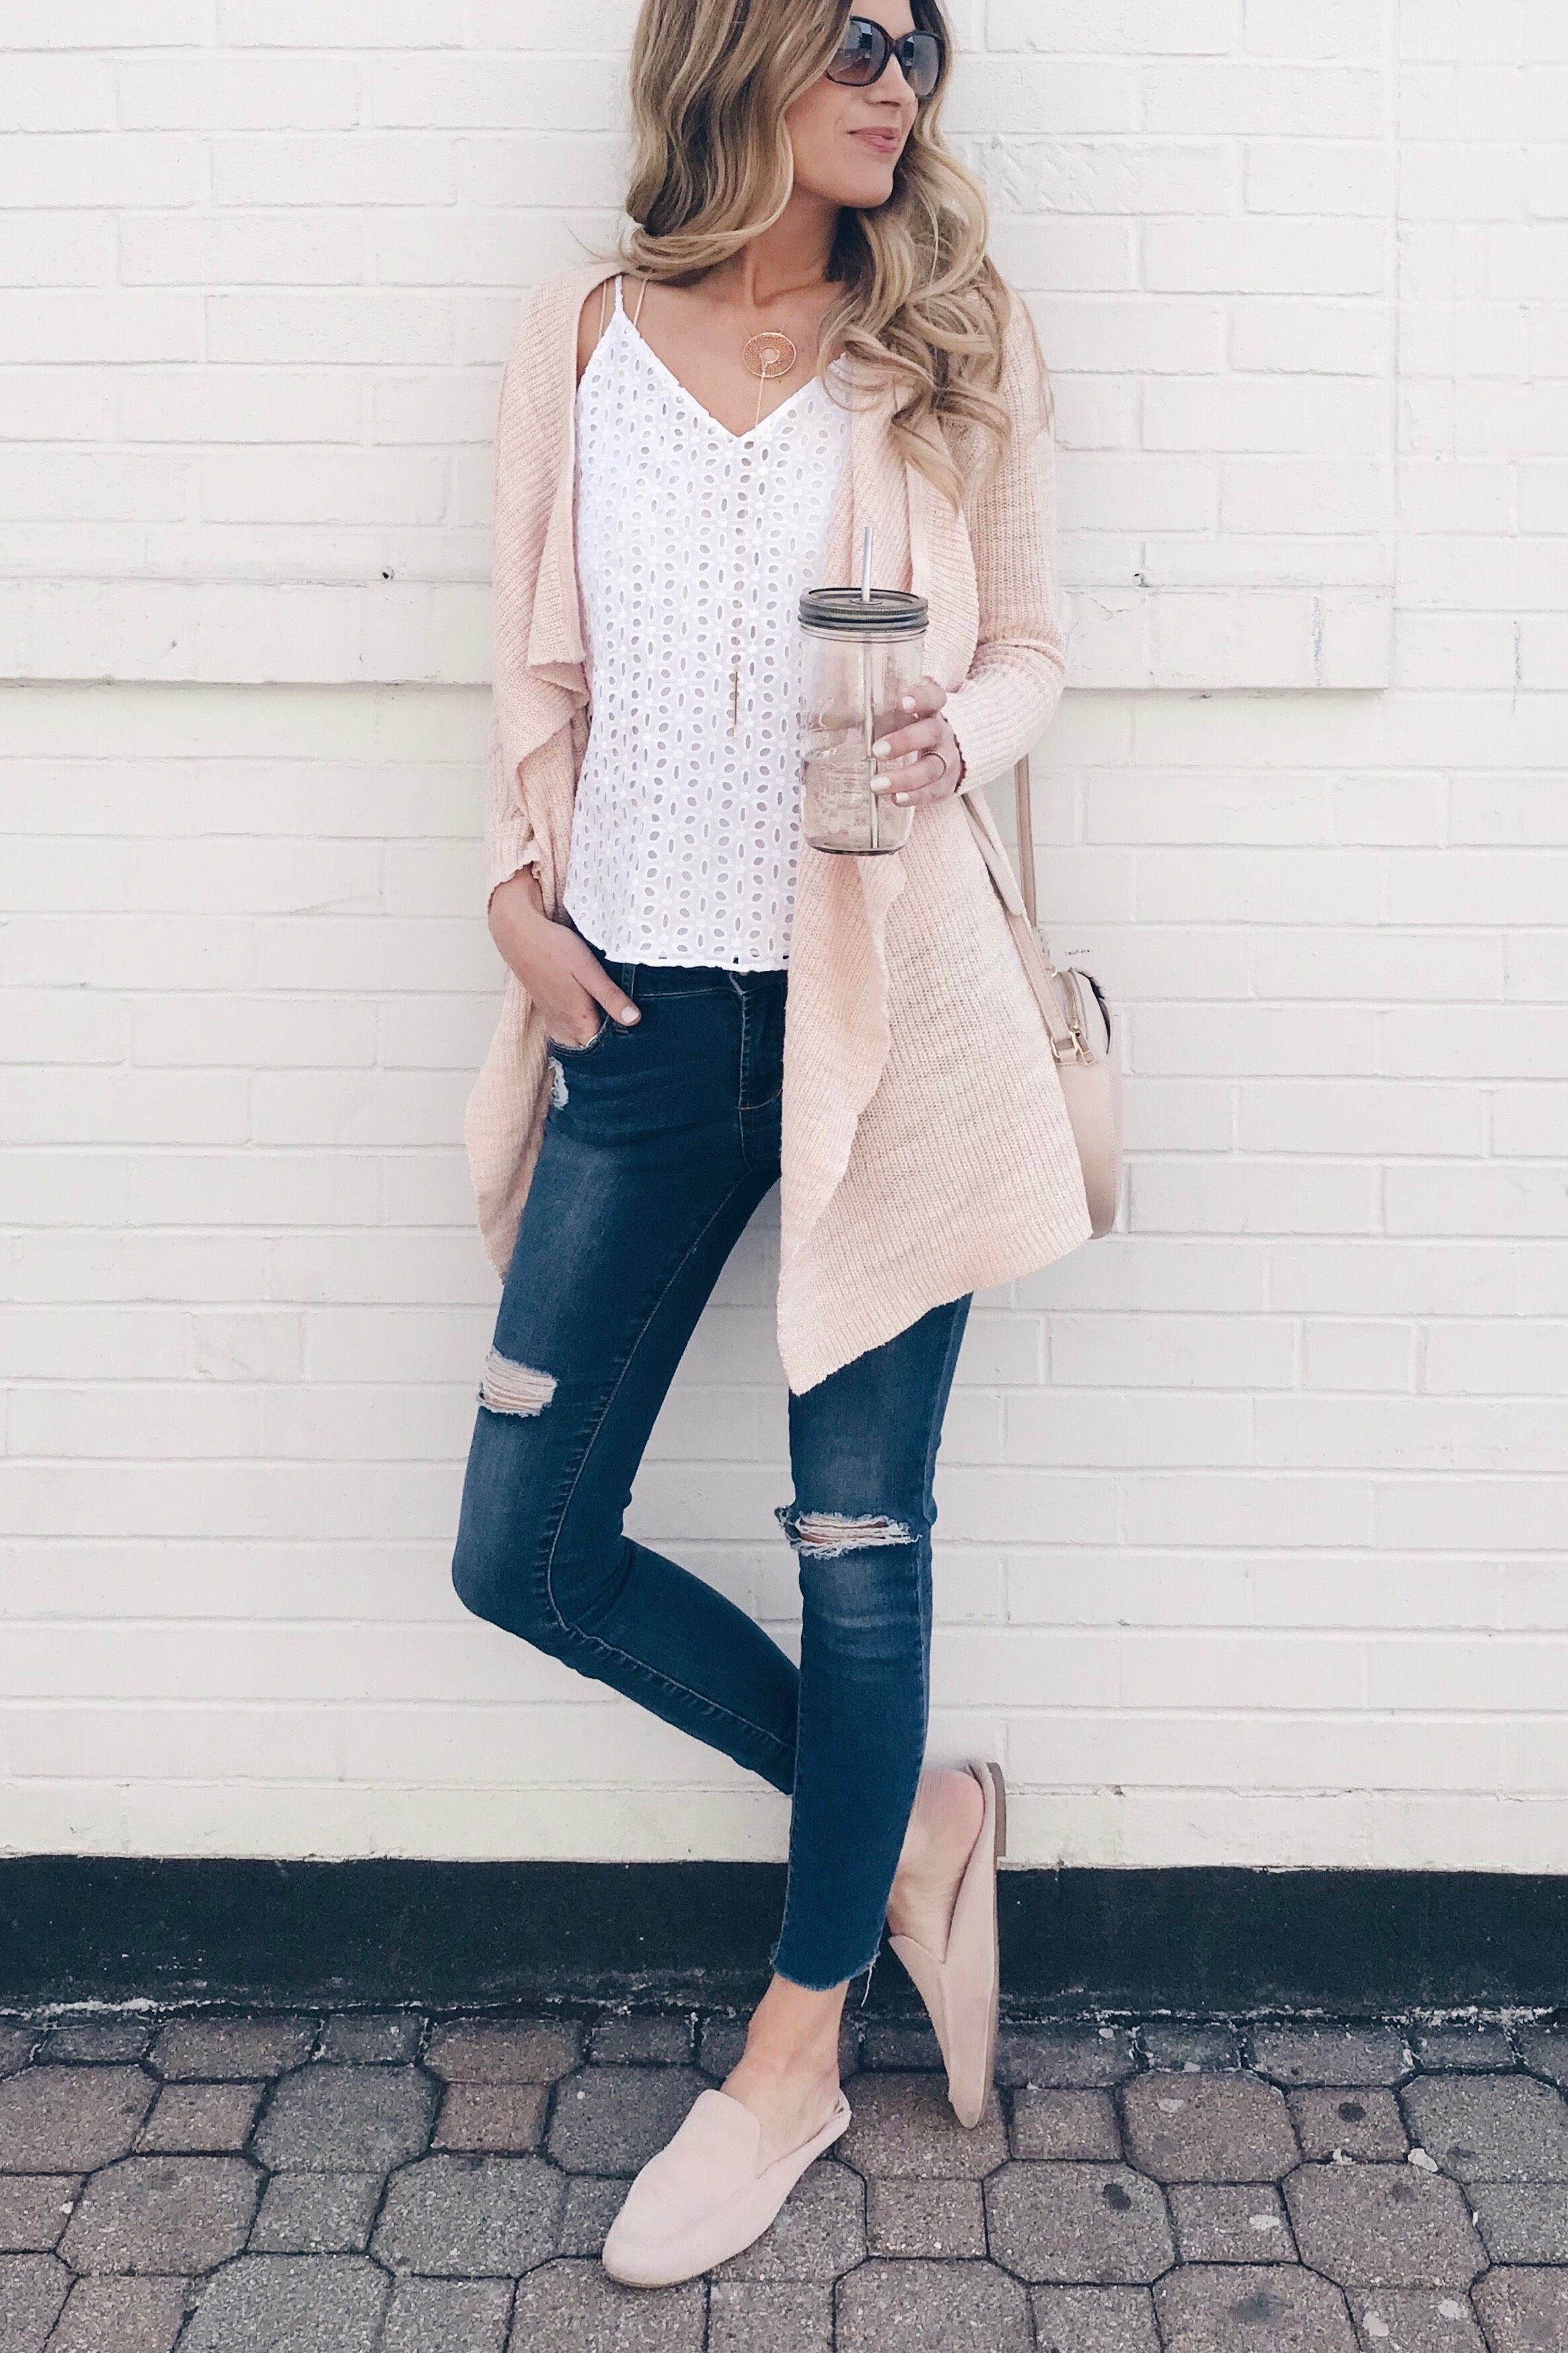 7 Spring Cardigans to Add to Your Closet